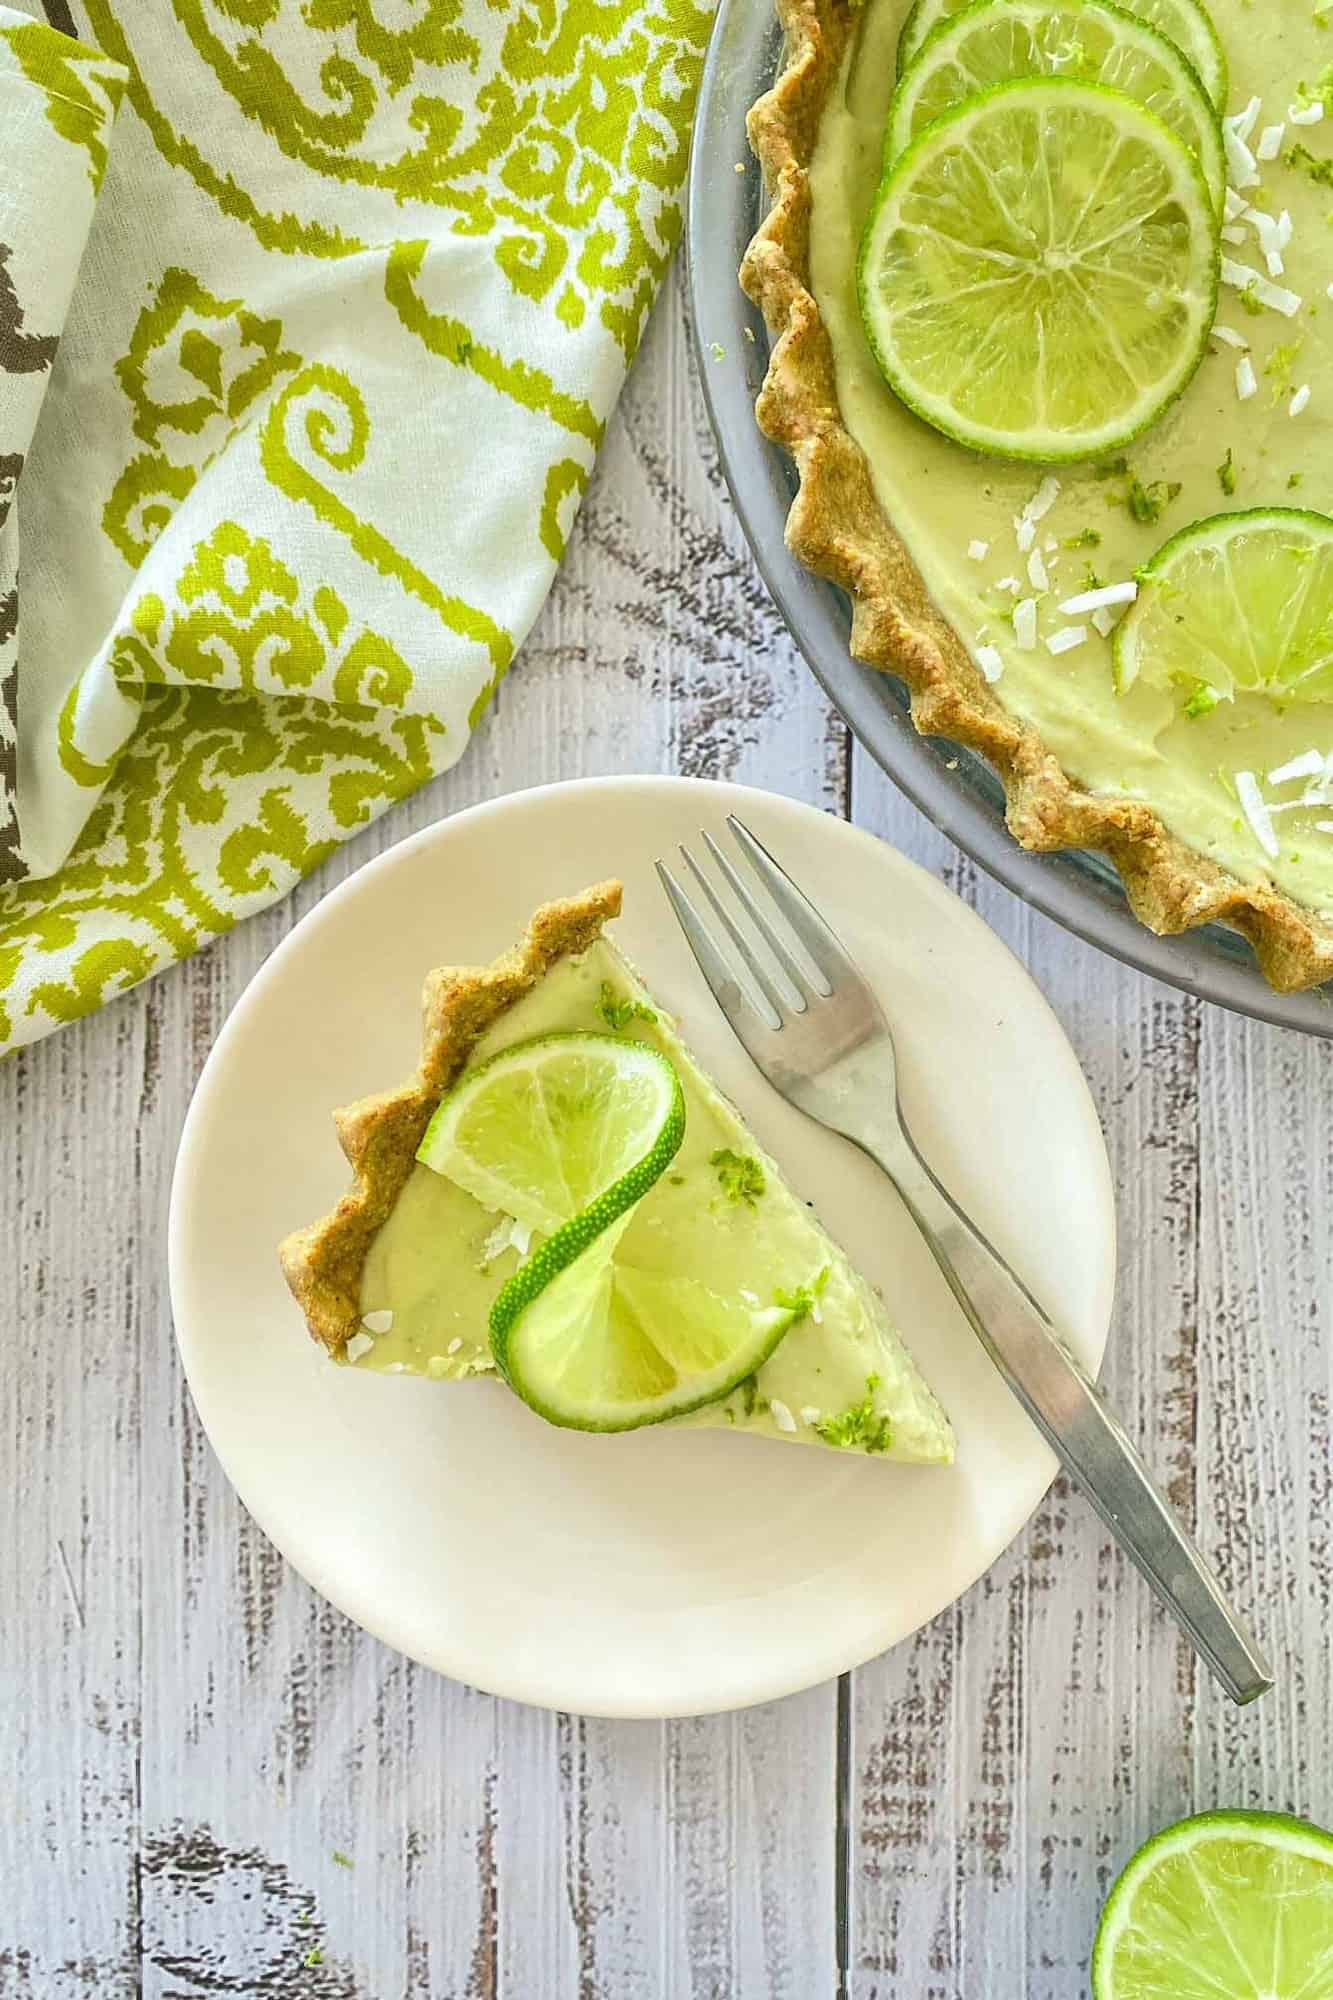 Overheat view of pie slice with lime garnish on white plate with fork beside it.